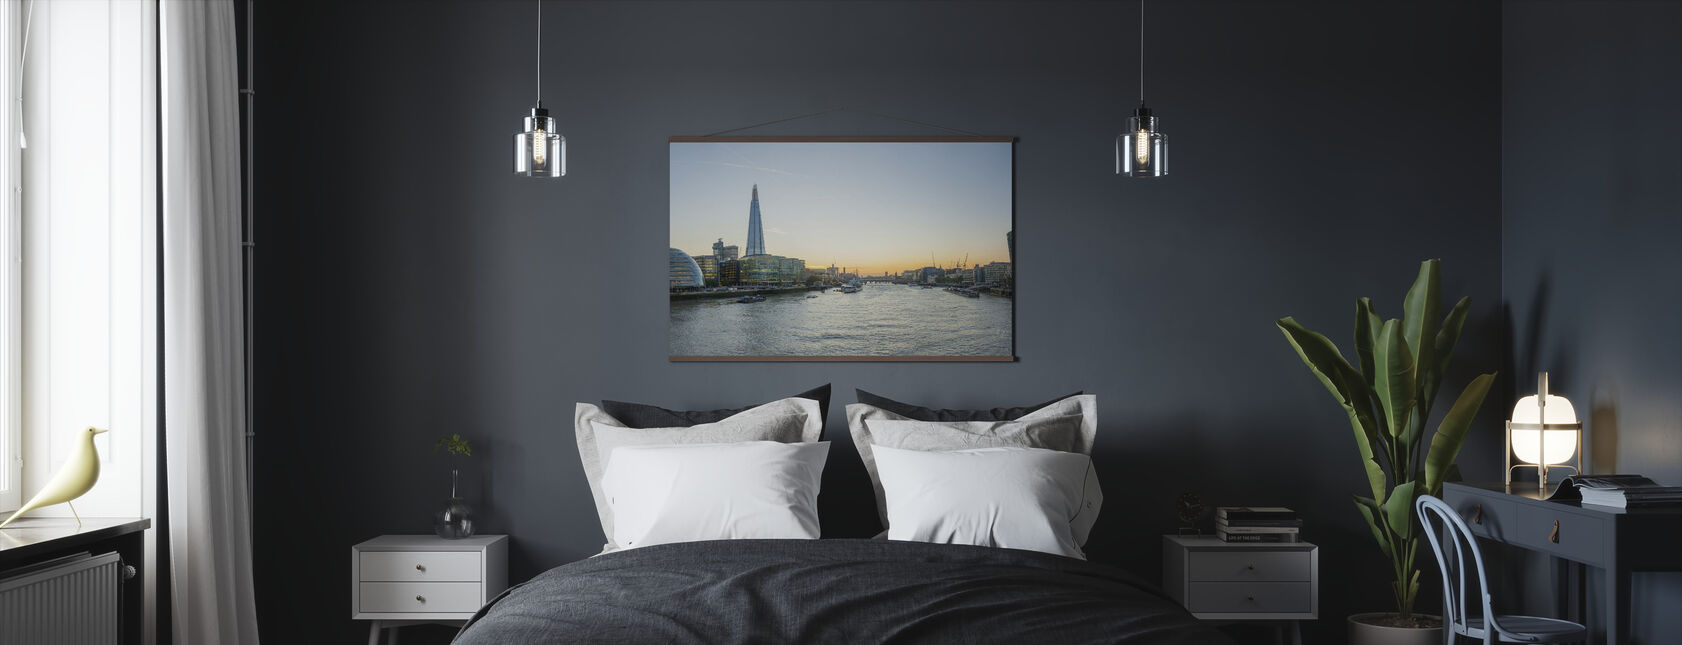 London Cityscape - Poster - Bedroom